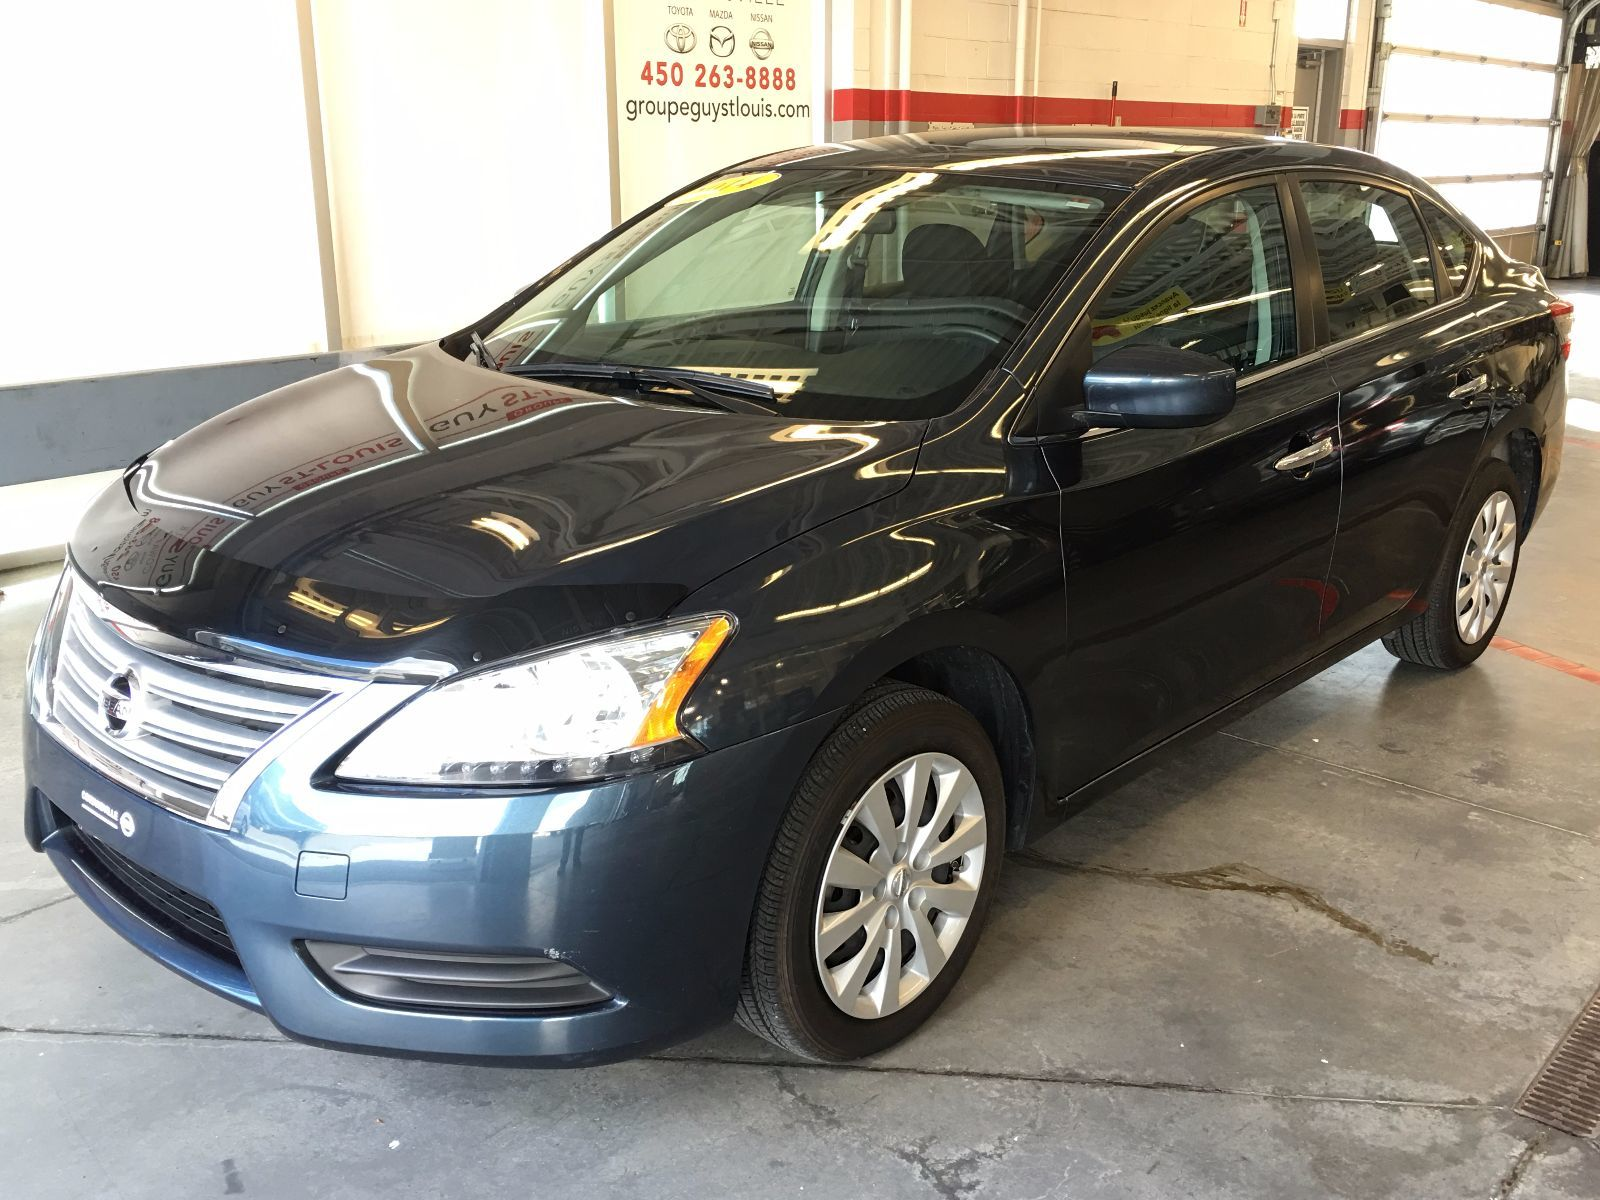 used 2014 nissan sentra sv in cowansville used inventory cowansville nissan in cowansville. Black Bedroom Furniture Sets. Home Design Ideas